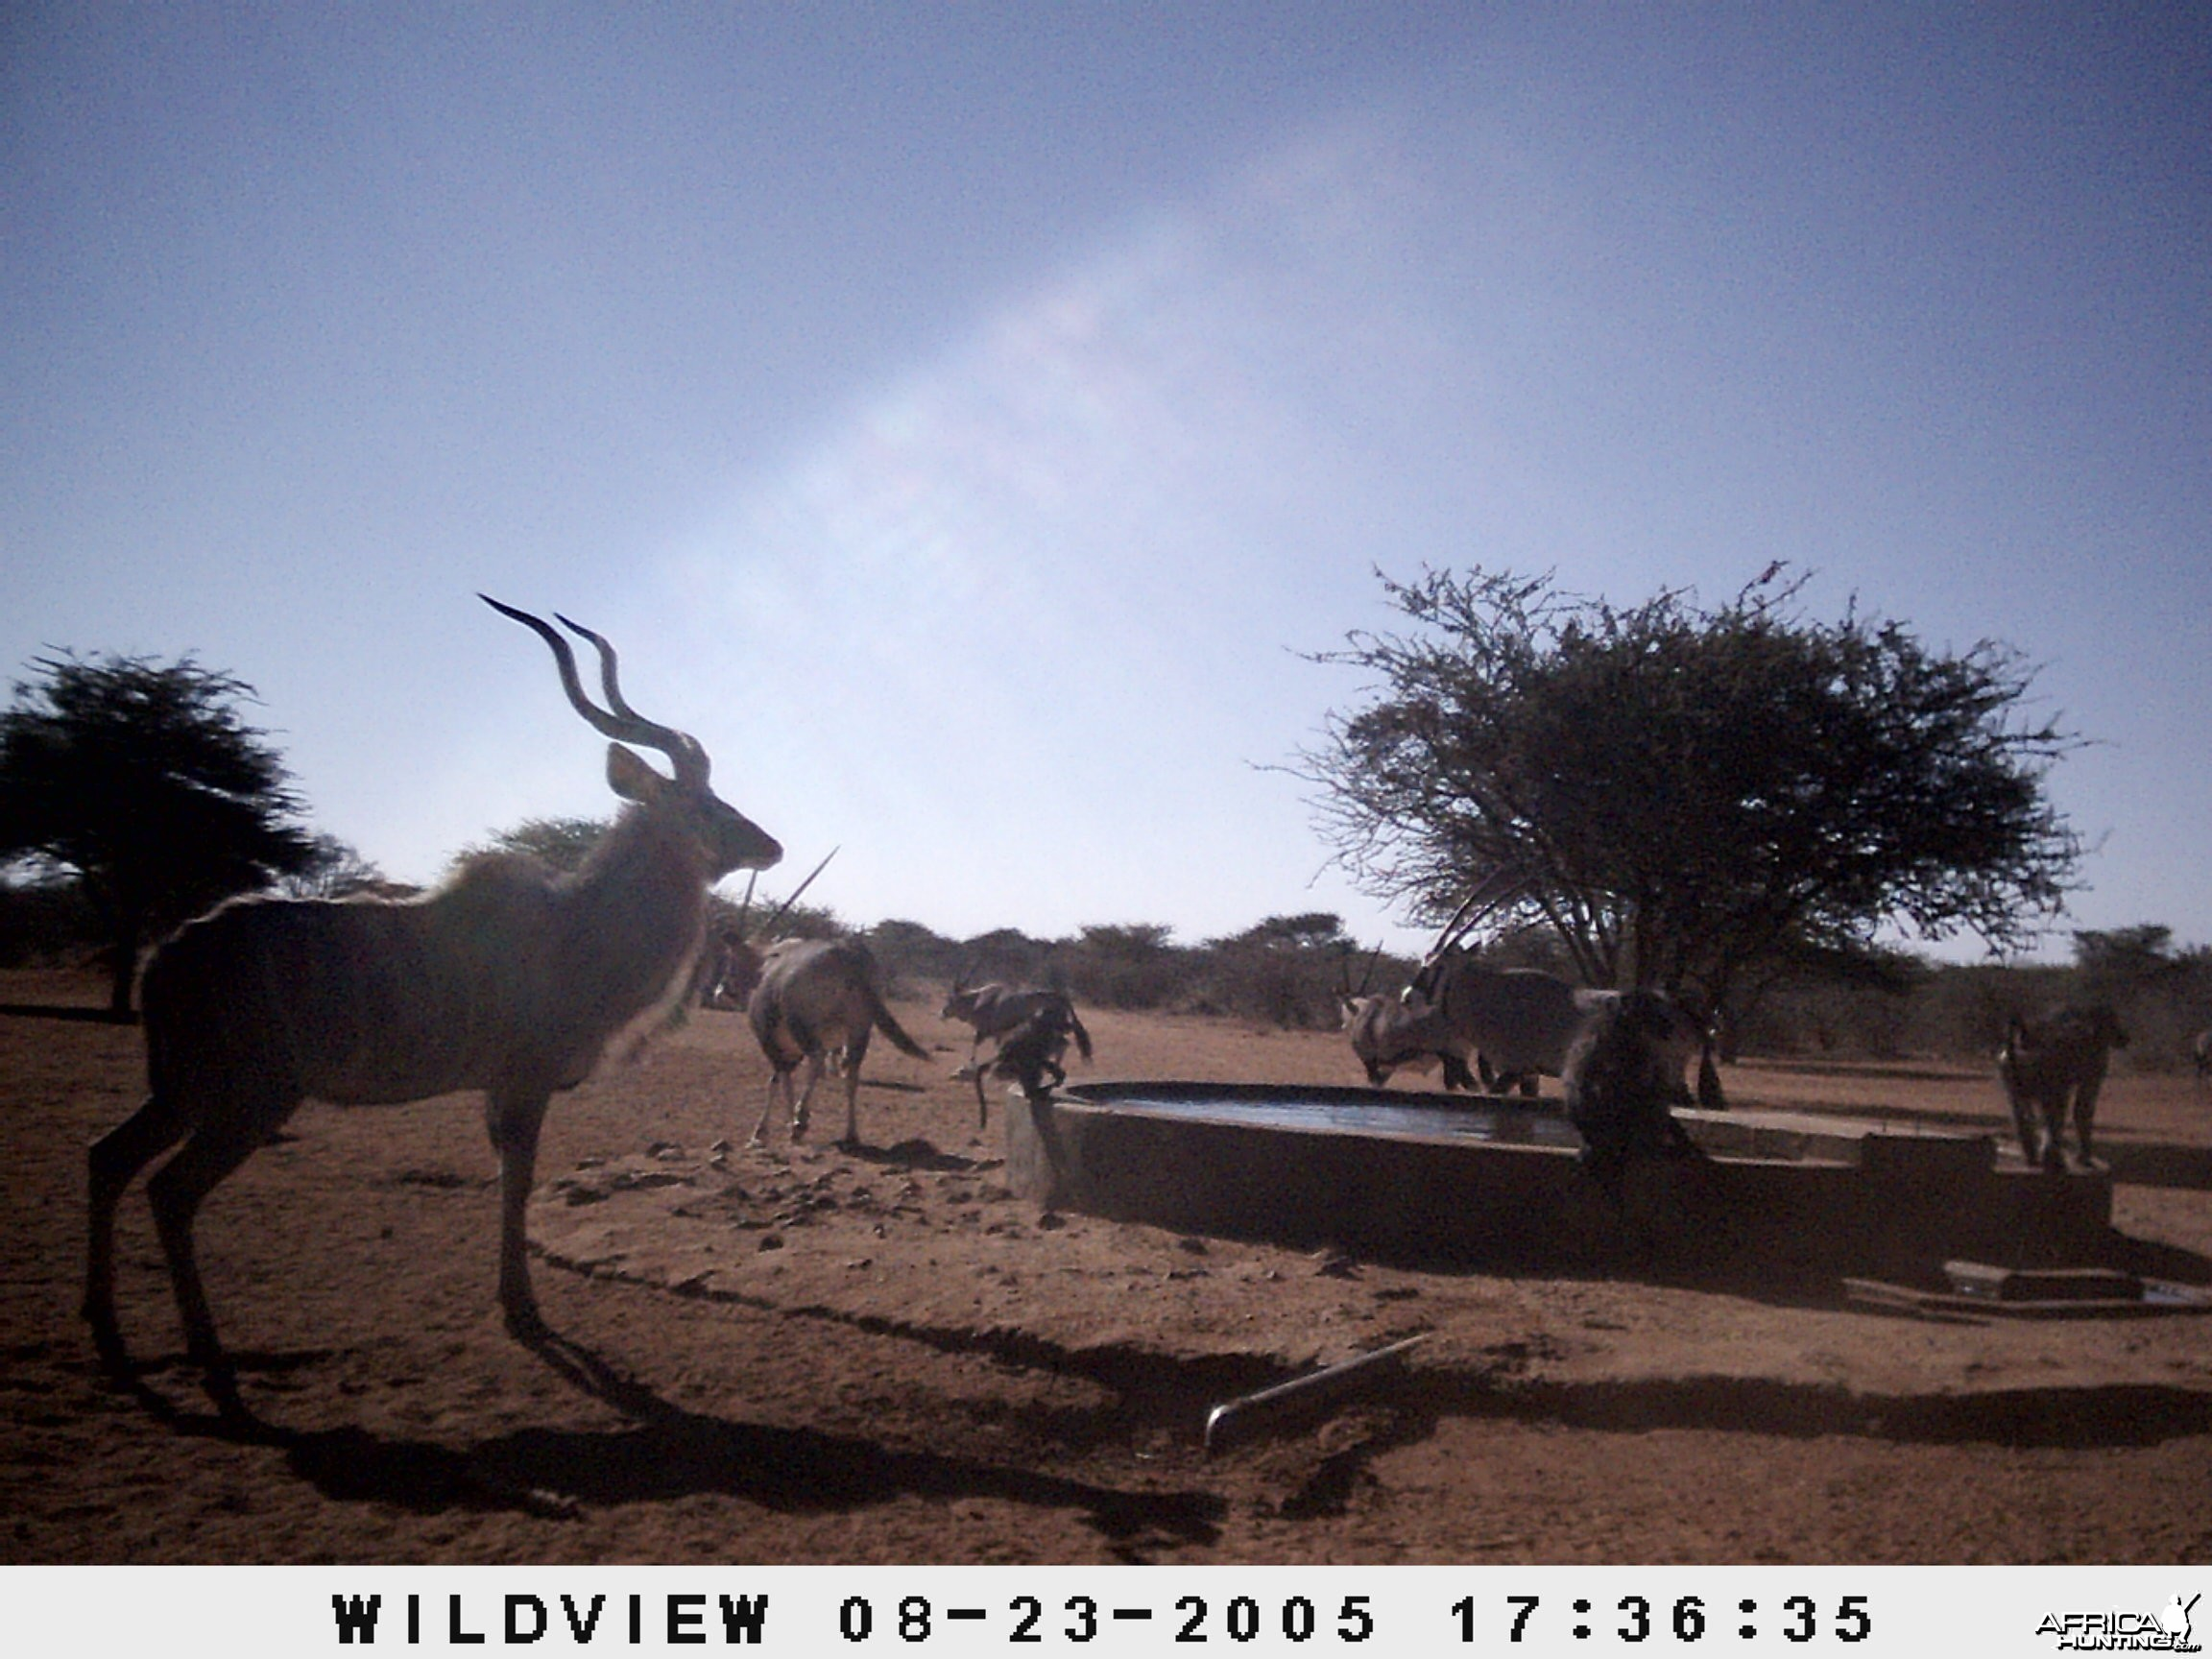 Gemsboks, Kudu and Baboon, Namibia